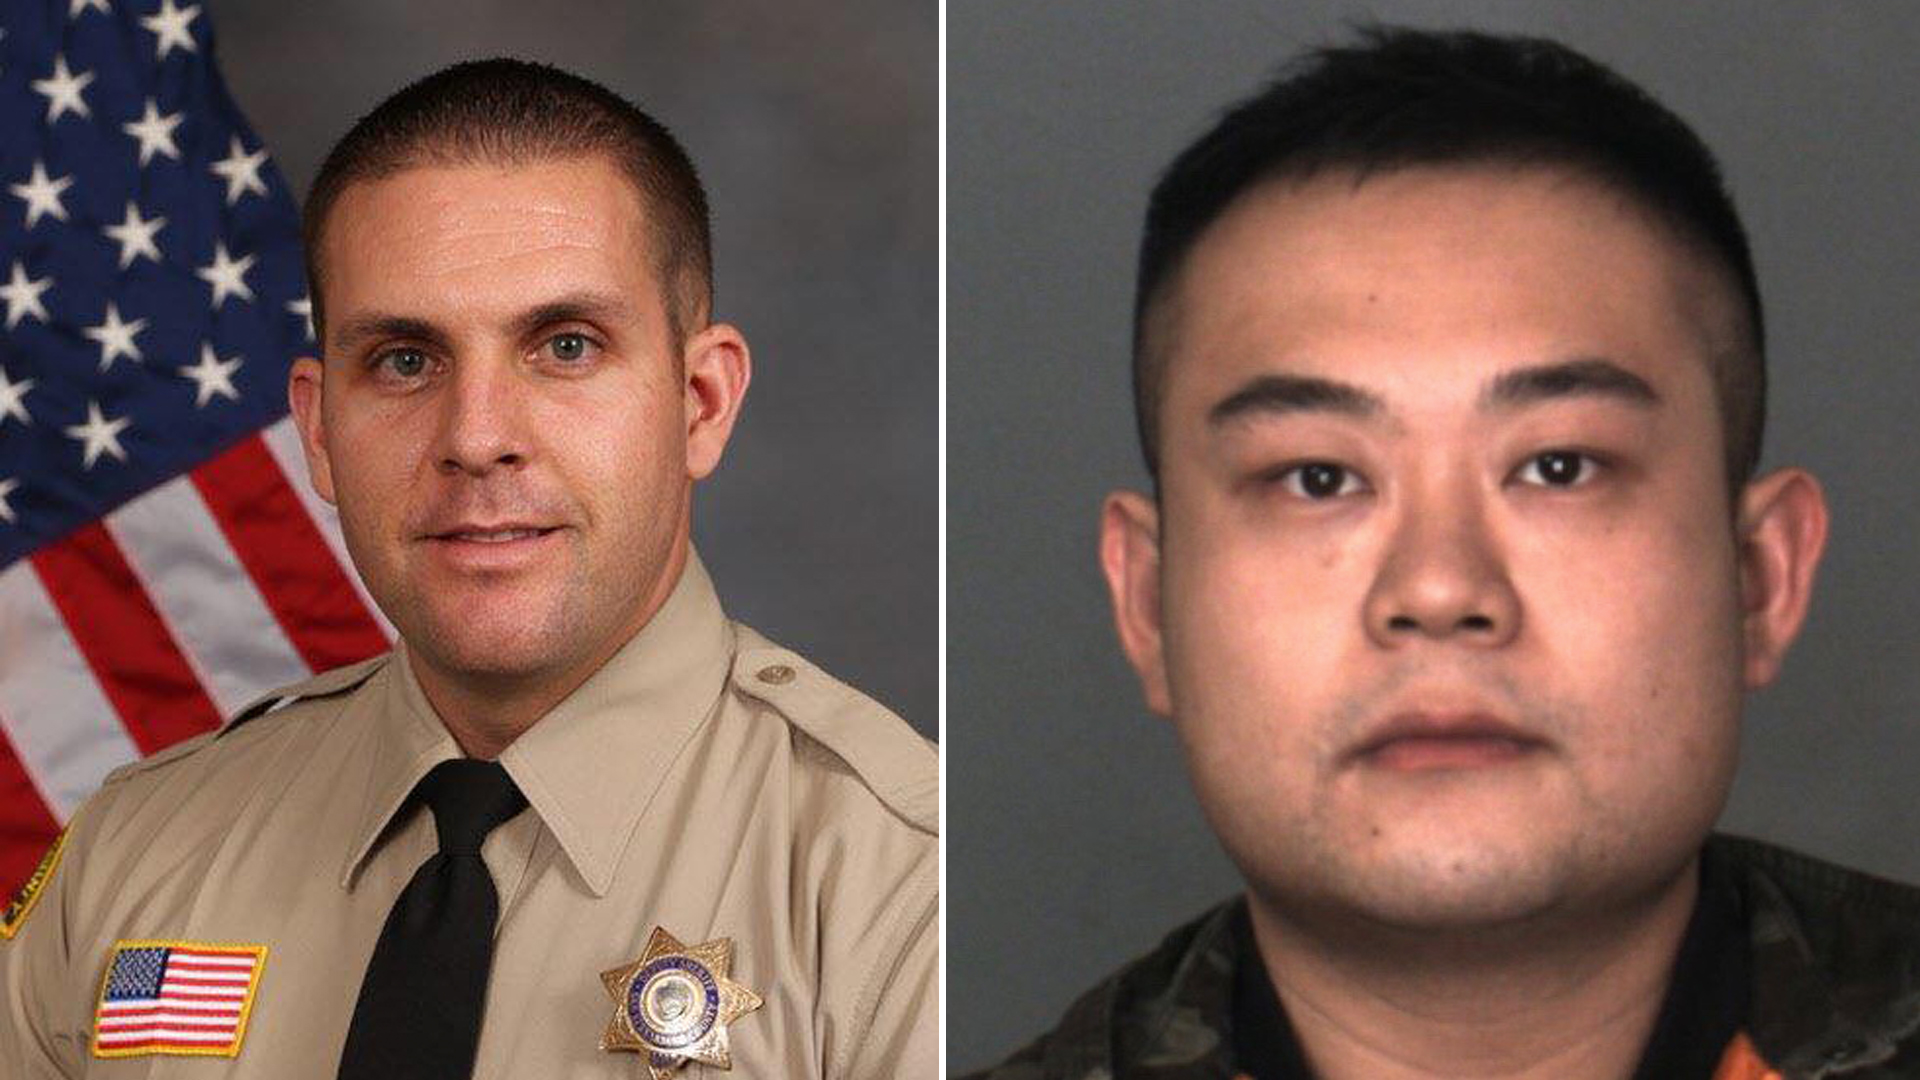 San Bernardino County Sheriff's Deputy Nicholas O'Loughlin , 28, (left) and Yijie Mao, 26, (right) are seen in undated photos provided by the Sheriff's Department and Chino Police Department on Feb. 17, 2019.